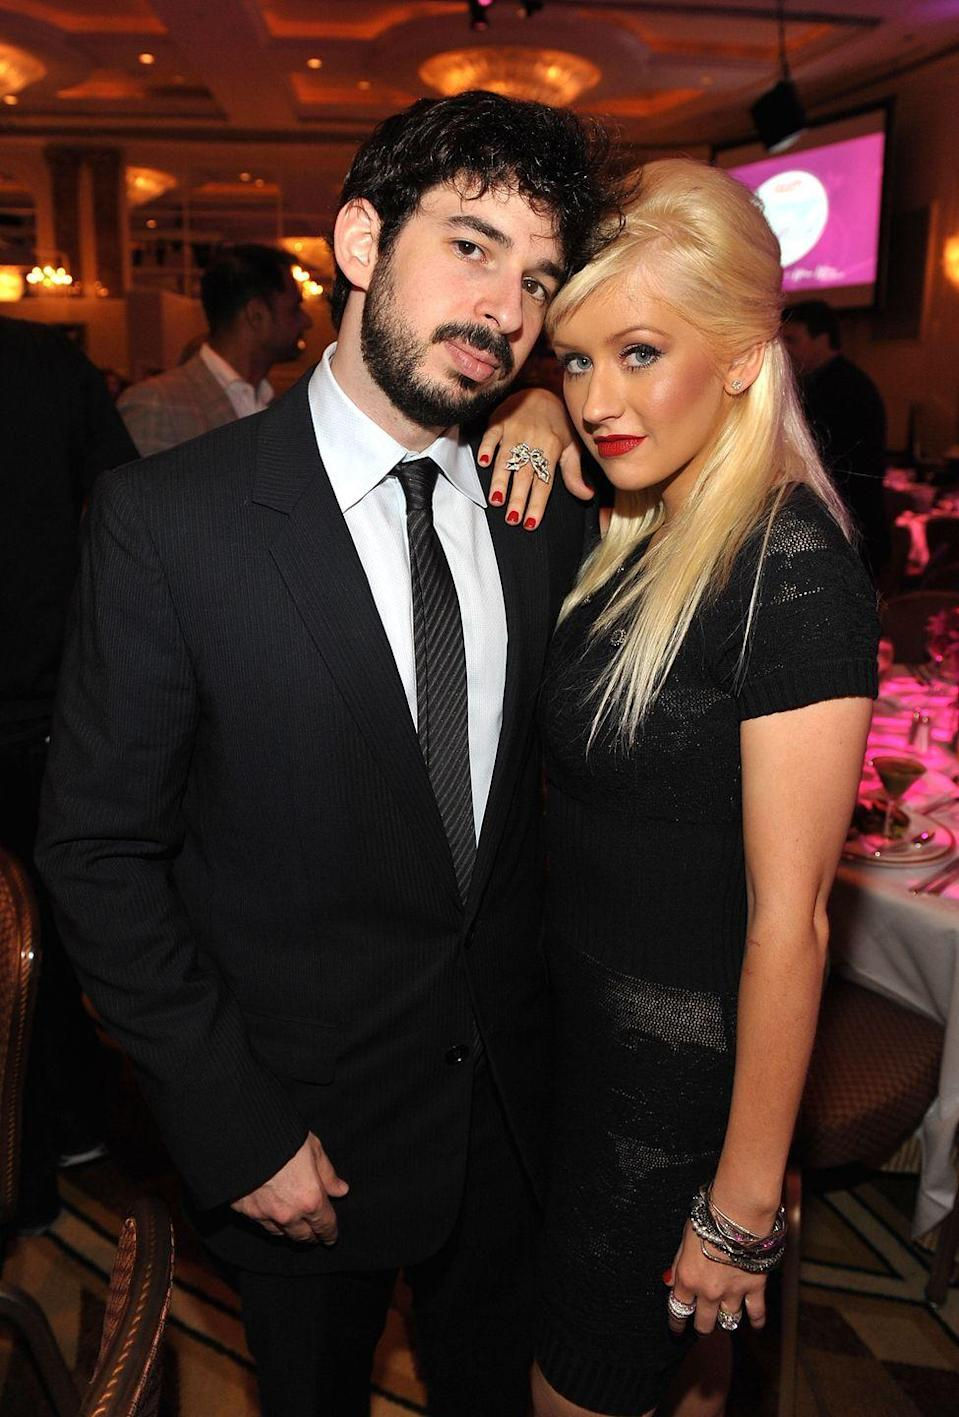 "<p>Christina Aguilera and Jordan Bratman's Napa Valley nuptials had 150 guests in attendance, <a href=""https://www.cheatsheet.com/money-career/these-ridiculously-expensive-celebrity-weddings-all-ended-in-divorce.html/"" rel=""nofollow noopener"" target=""_blank"" data-ylk=""slk:an $80,000 wedding"" class=""link rapid-noclick-resp"">an $80,000 wedding </a>dress, and rung up around $2 million. Their marriage didn't last long, and the couple ended up parting ways in 2011 after six years together.</p>"